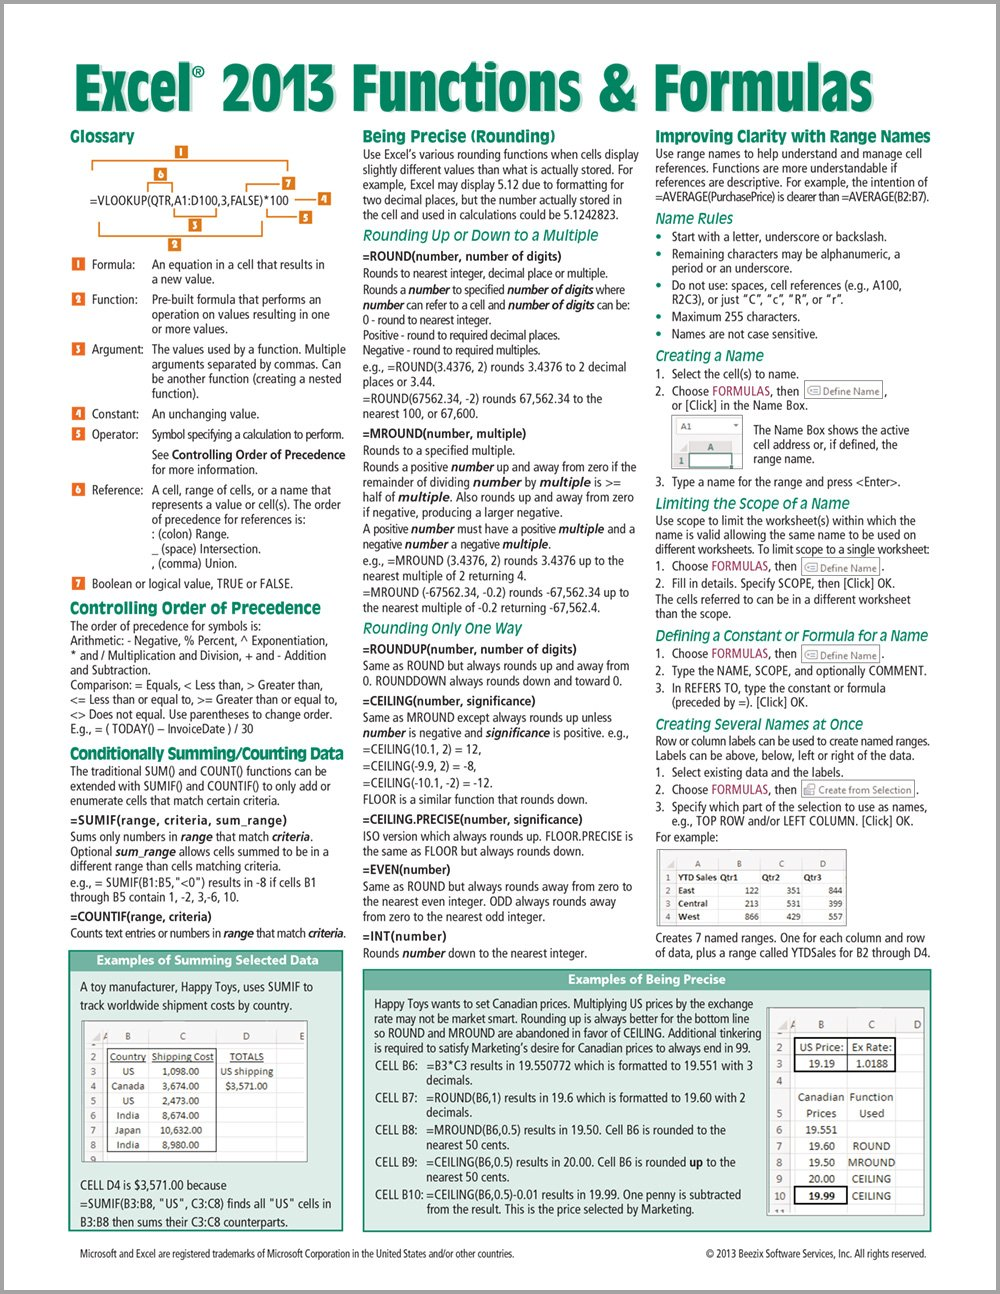 Microsoft Excel 2013 Functions Formulas Quick Reference Card 4 Page Cheat Sheet Focusing On Examples And Context For Intermediate To Advanced Functions And Formulas Laminated Guide Beezix Inc Beezix Inc 9781936220779 Amazon Com Books